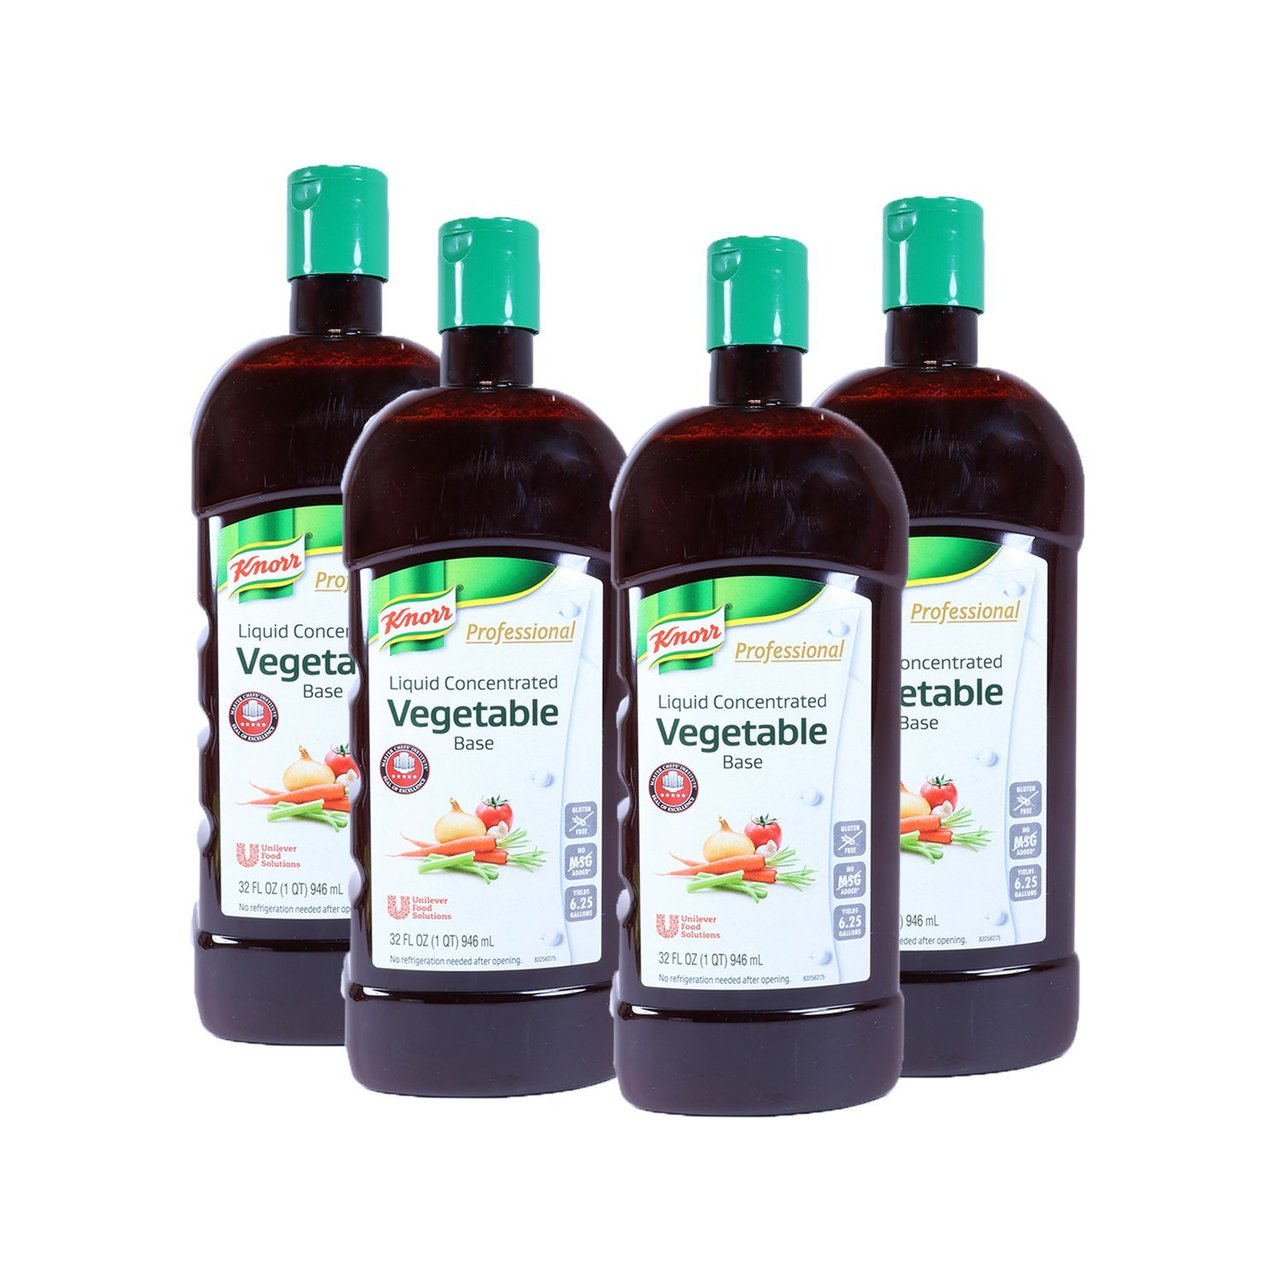 4 PACKS : Knorr Liquid Concentrate Vegetable Base, 32 Ounce